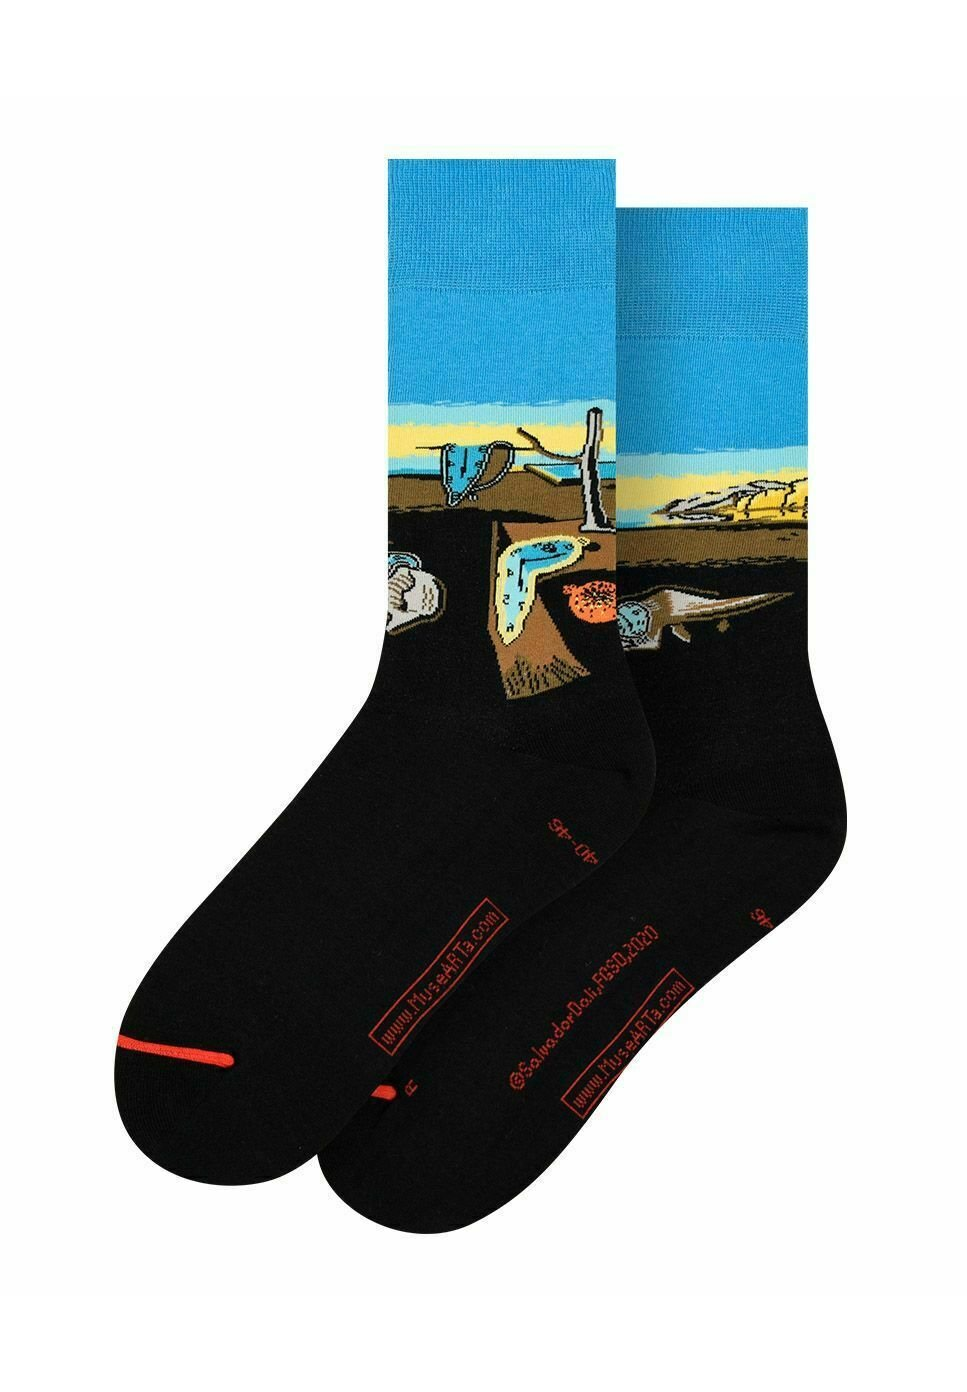 Femme SALVADOR DALÍ : THE PERSISTENCE OF MEMORY - Chaussettes